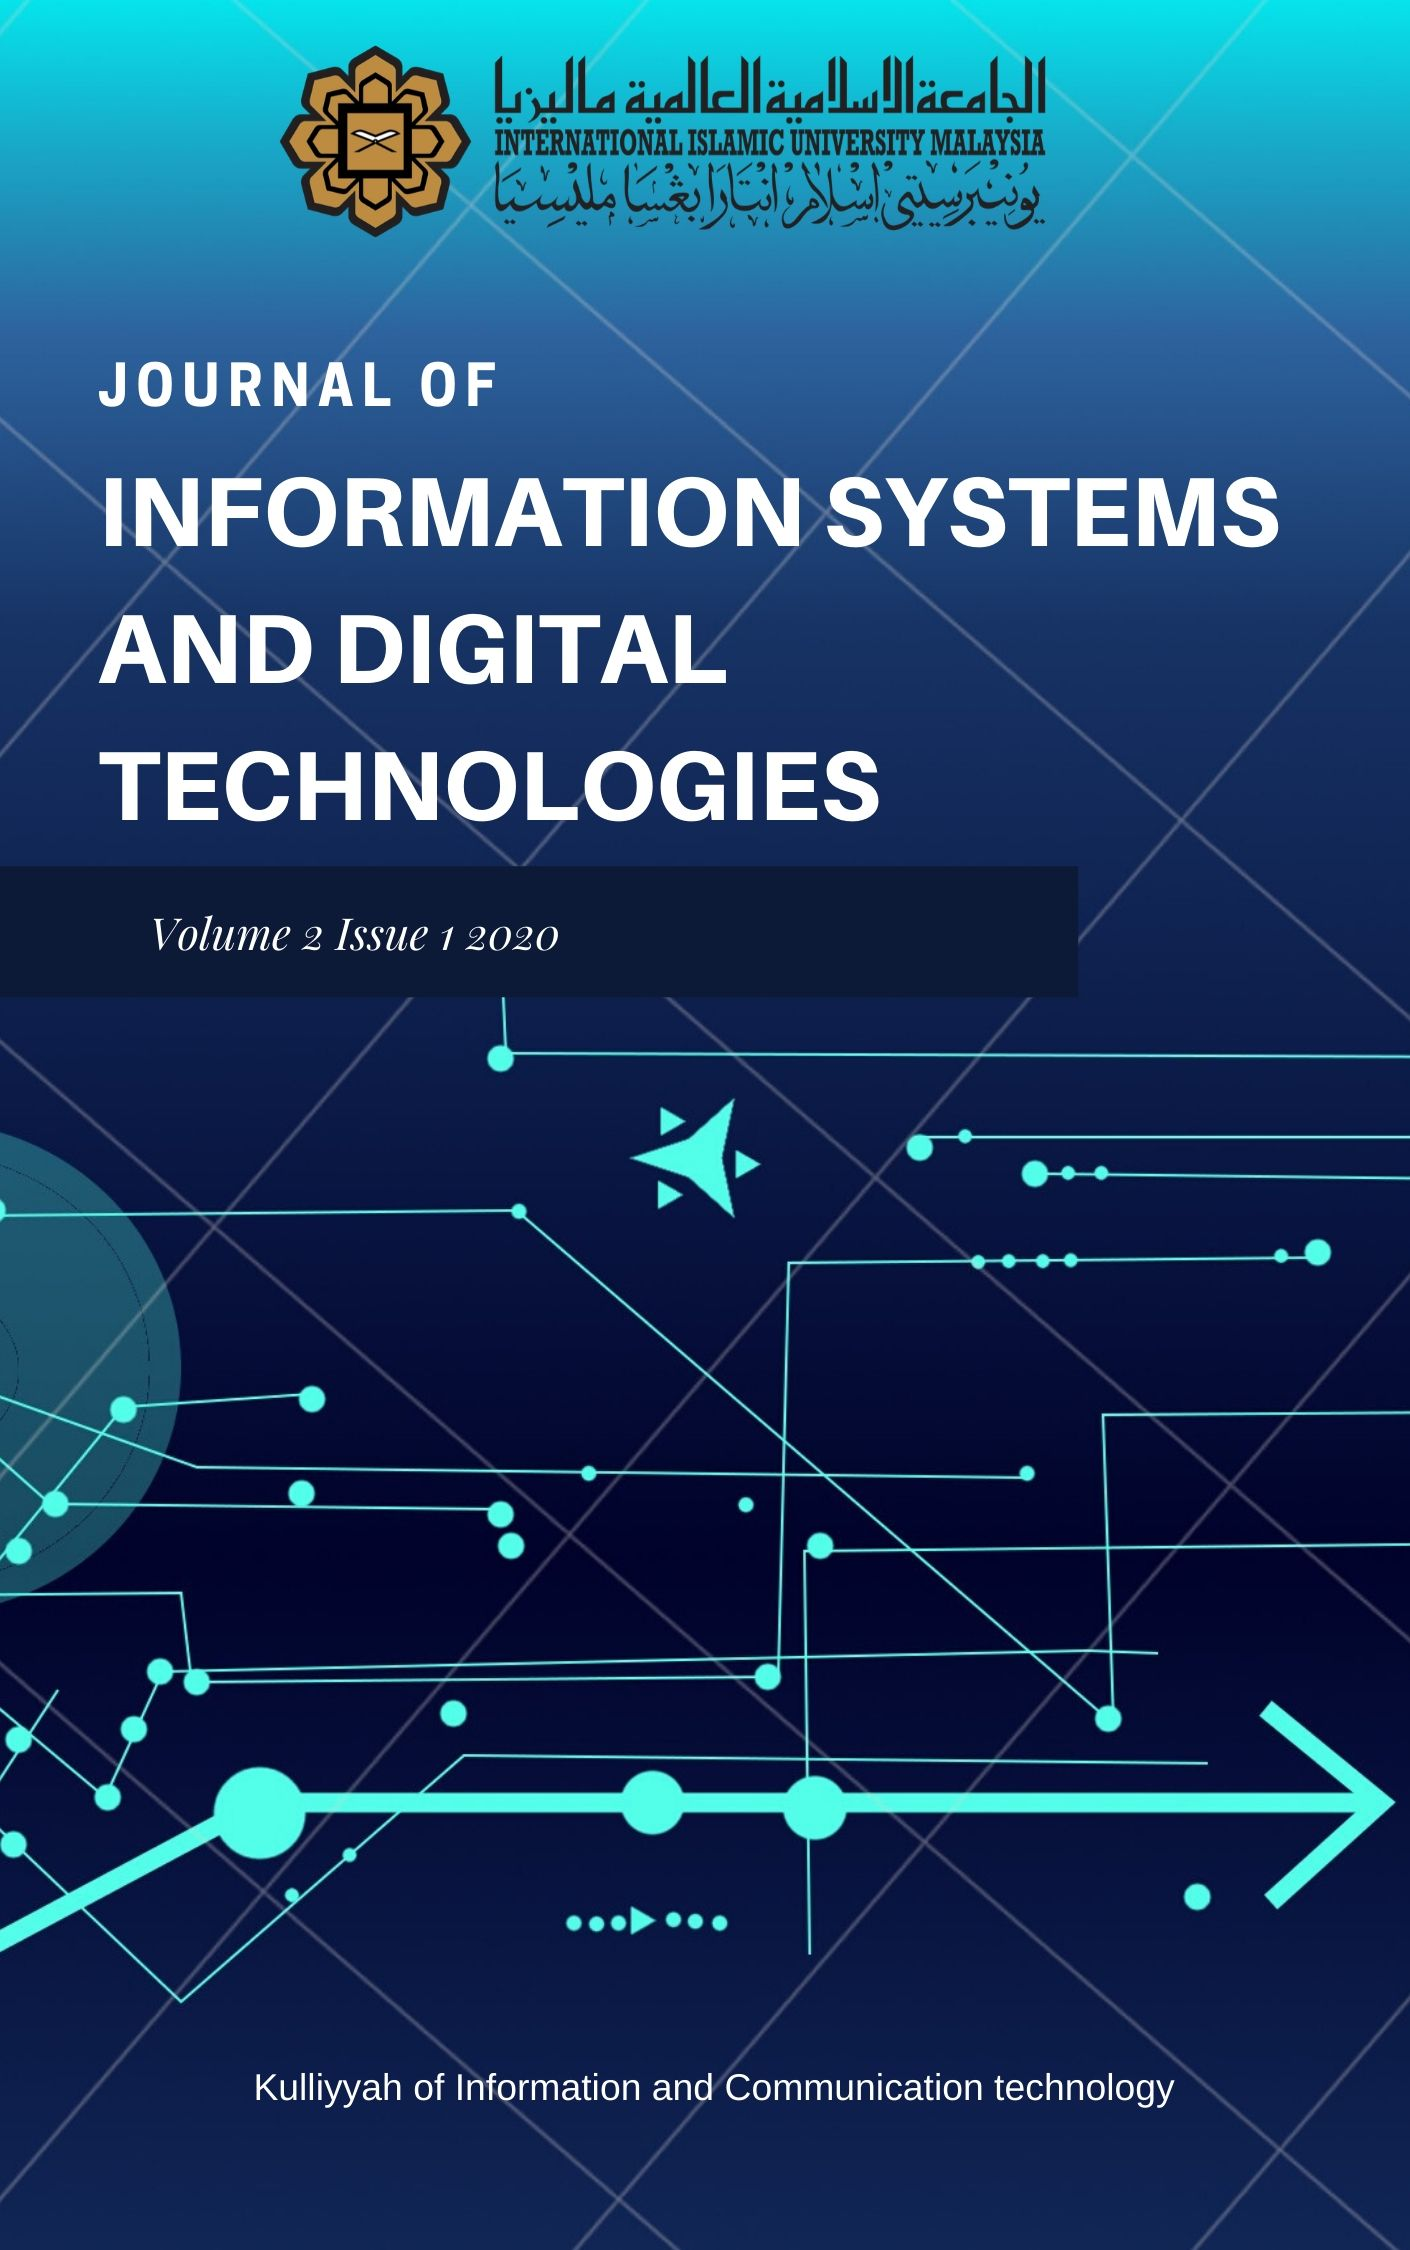 View Vol. 2 No. 1 (2020): Journal of Information Systems and Digital Technologies